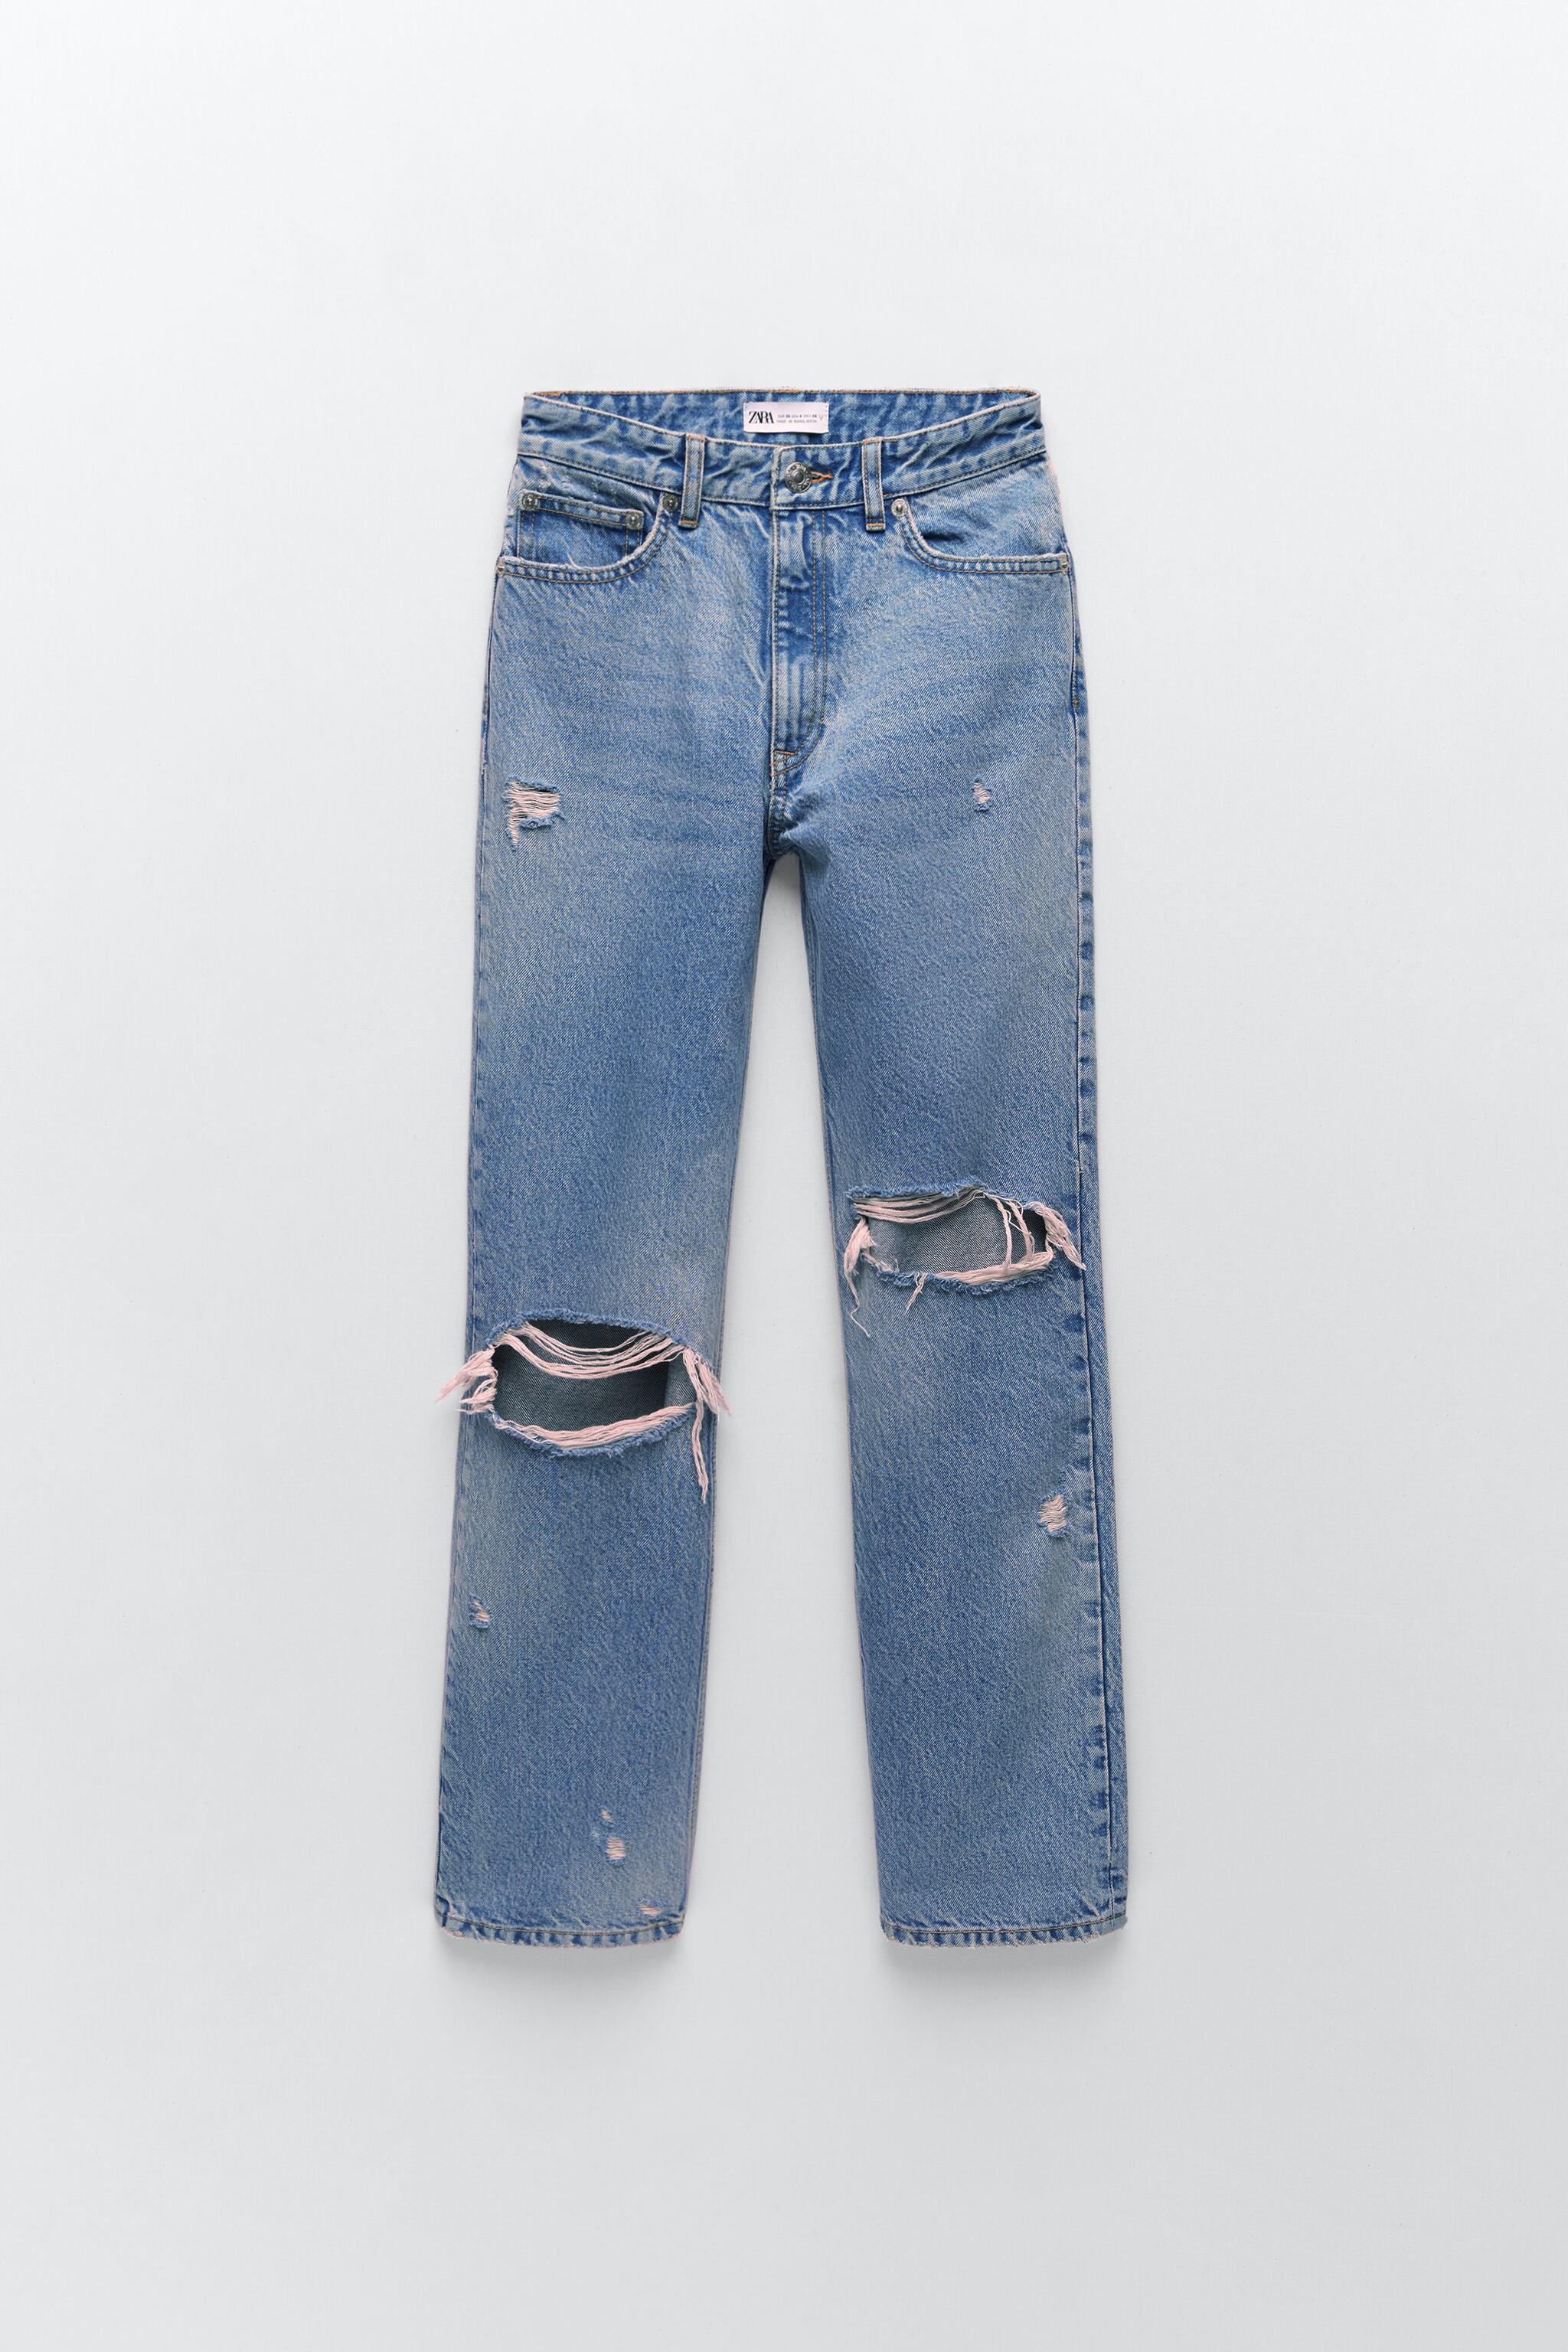 RIPPED STAIN DYE JEANS 4